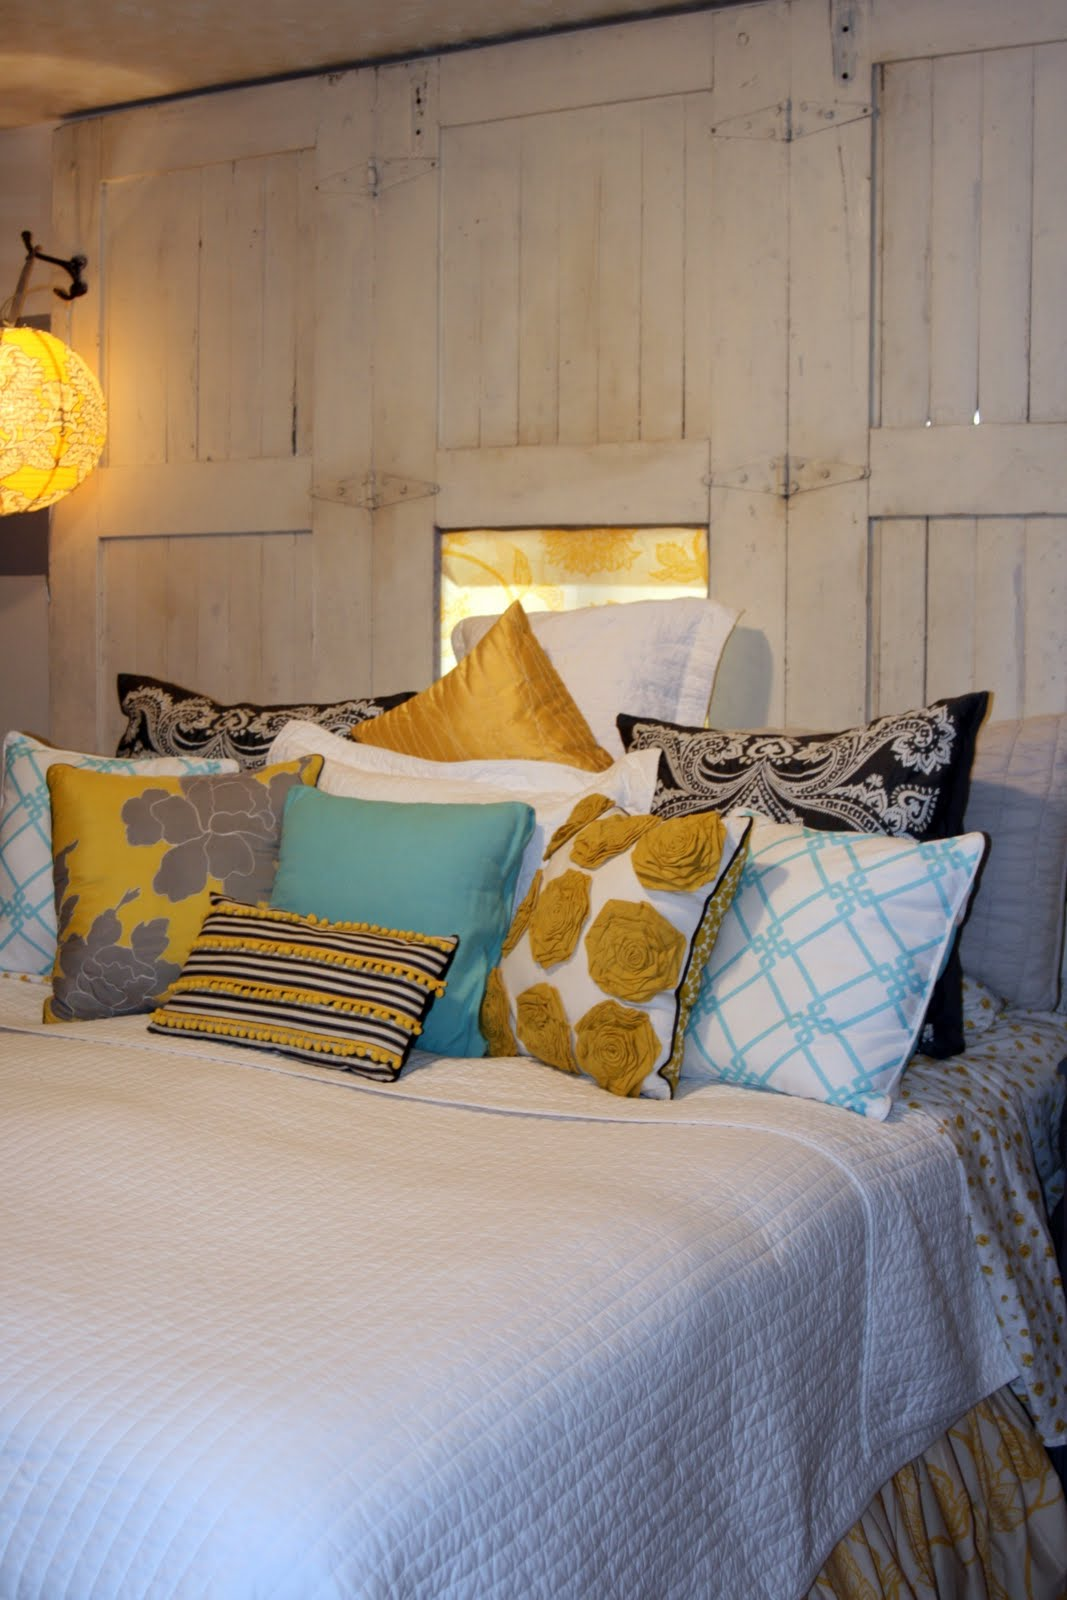 Black And White Pillows On Bed